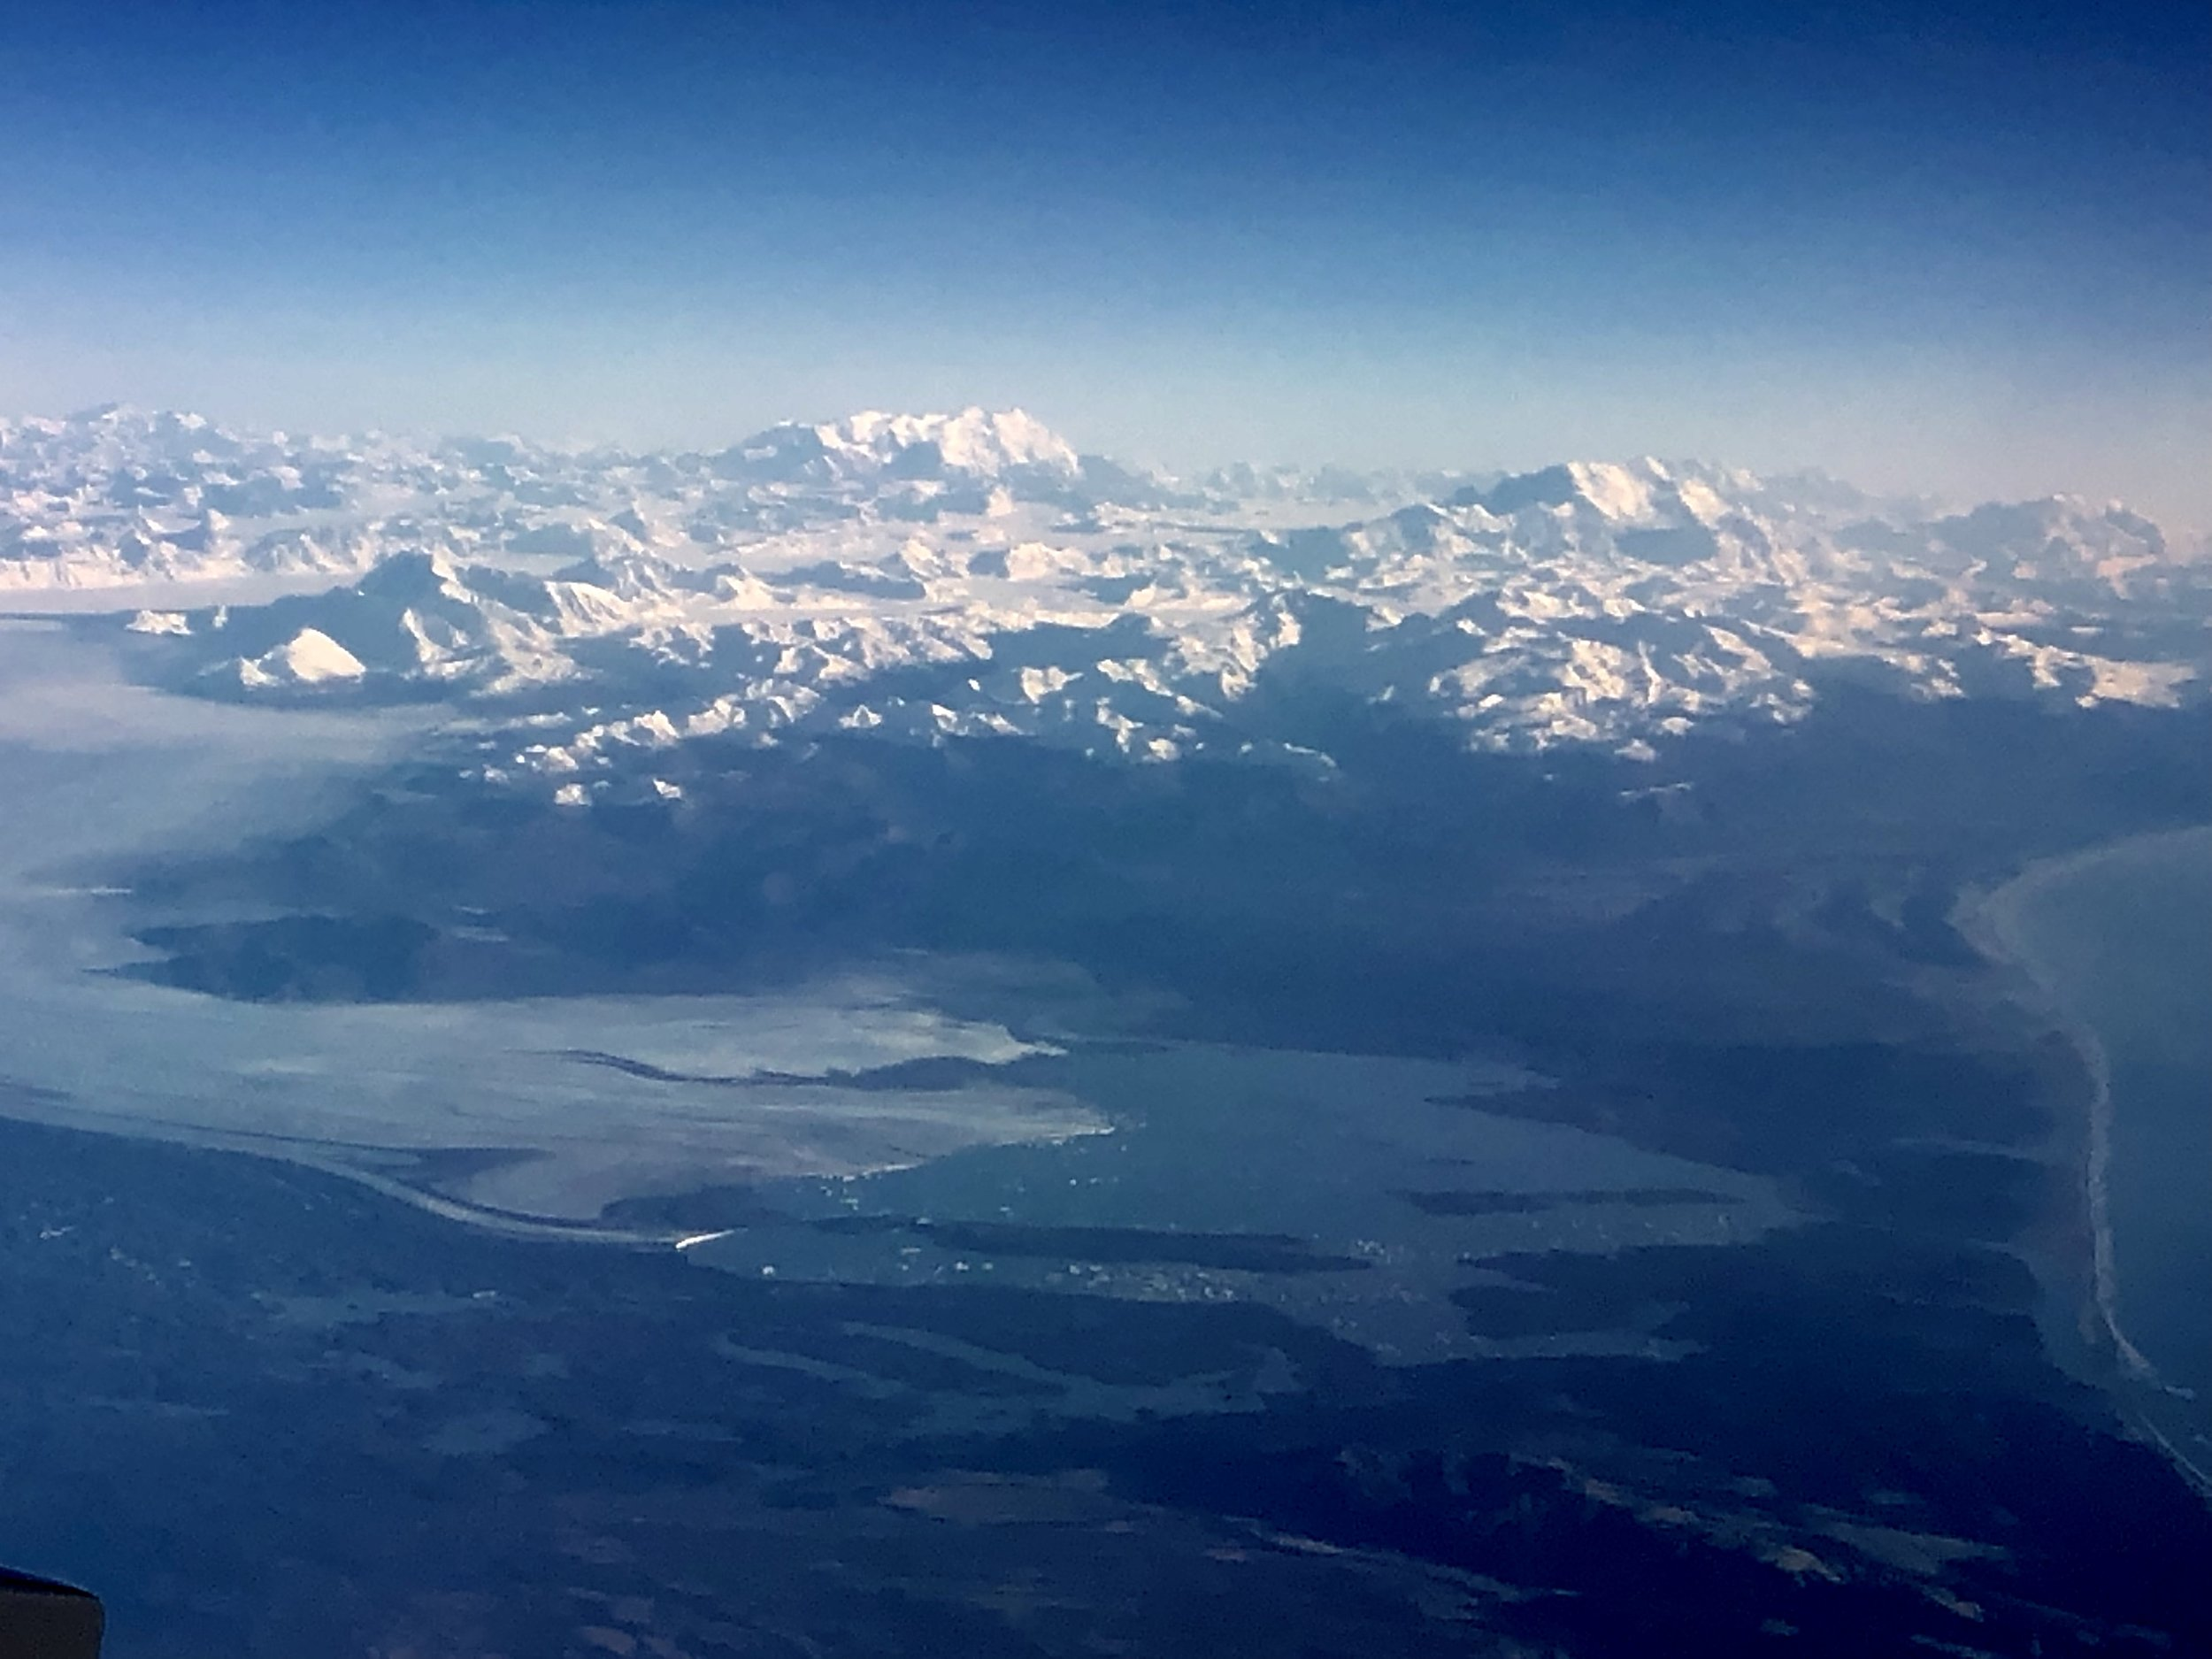 Mount Logan (left) with Mount St. Elias (right)